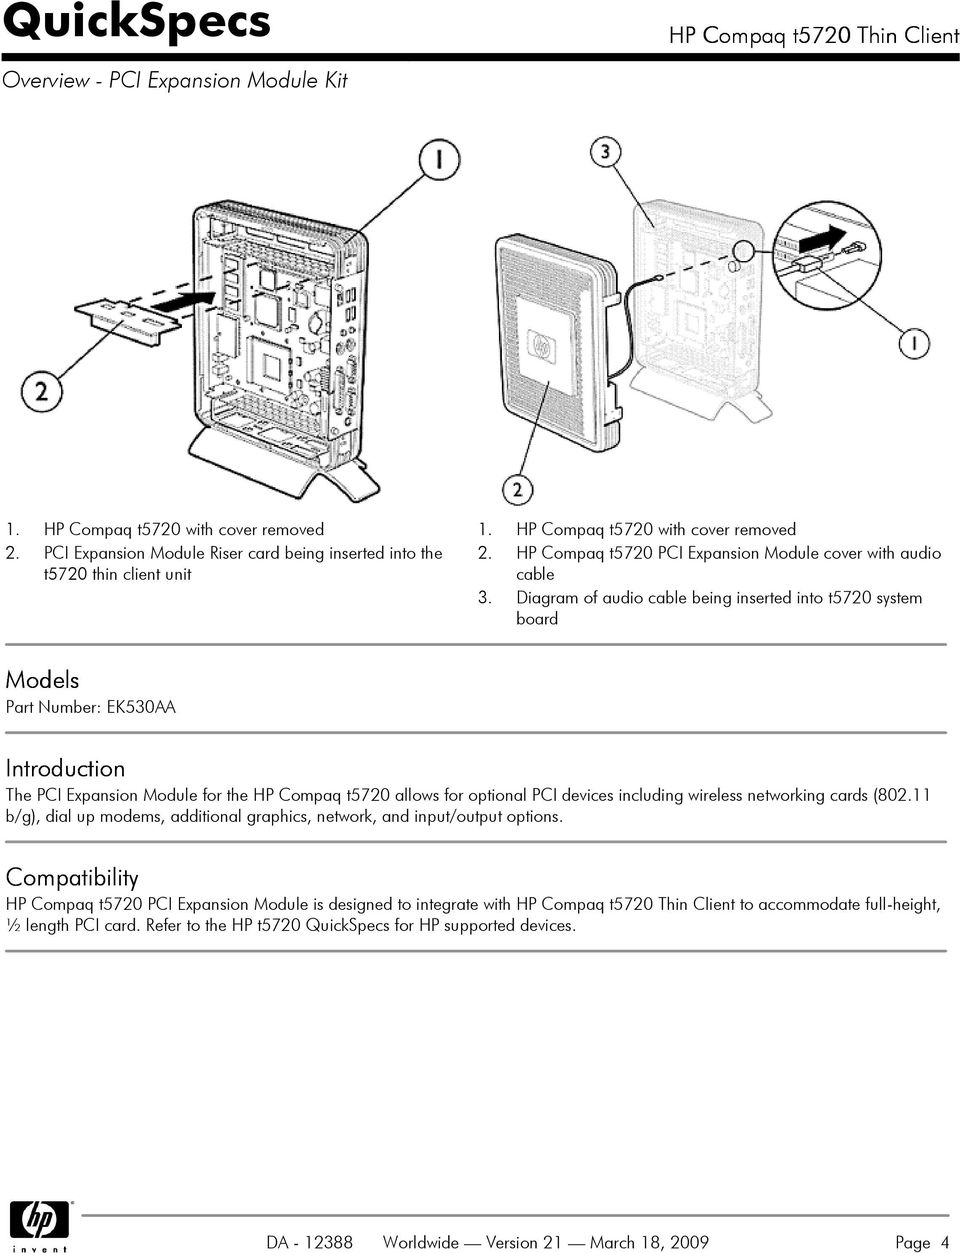 Hp Compaq T5720 Thin Client Overview Without Pci Expansion Module Pdf Pc Wiring Diagram Of Audio Cable Being Inserted Into System Board Models Part Number Ek530aa Introduction